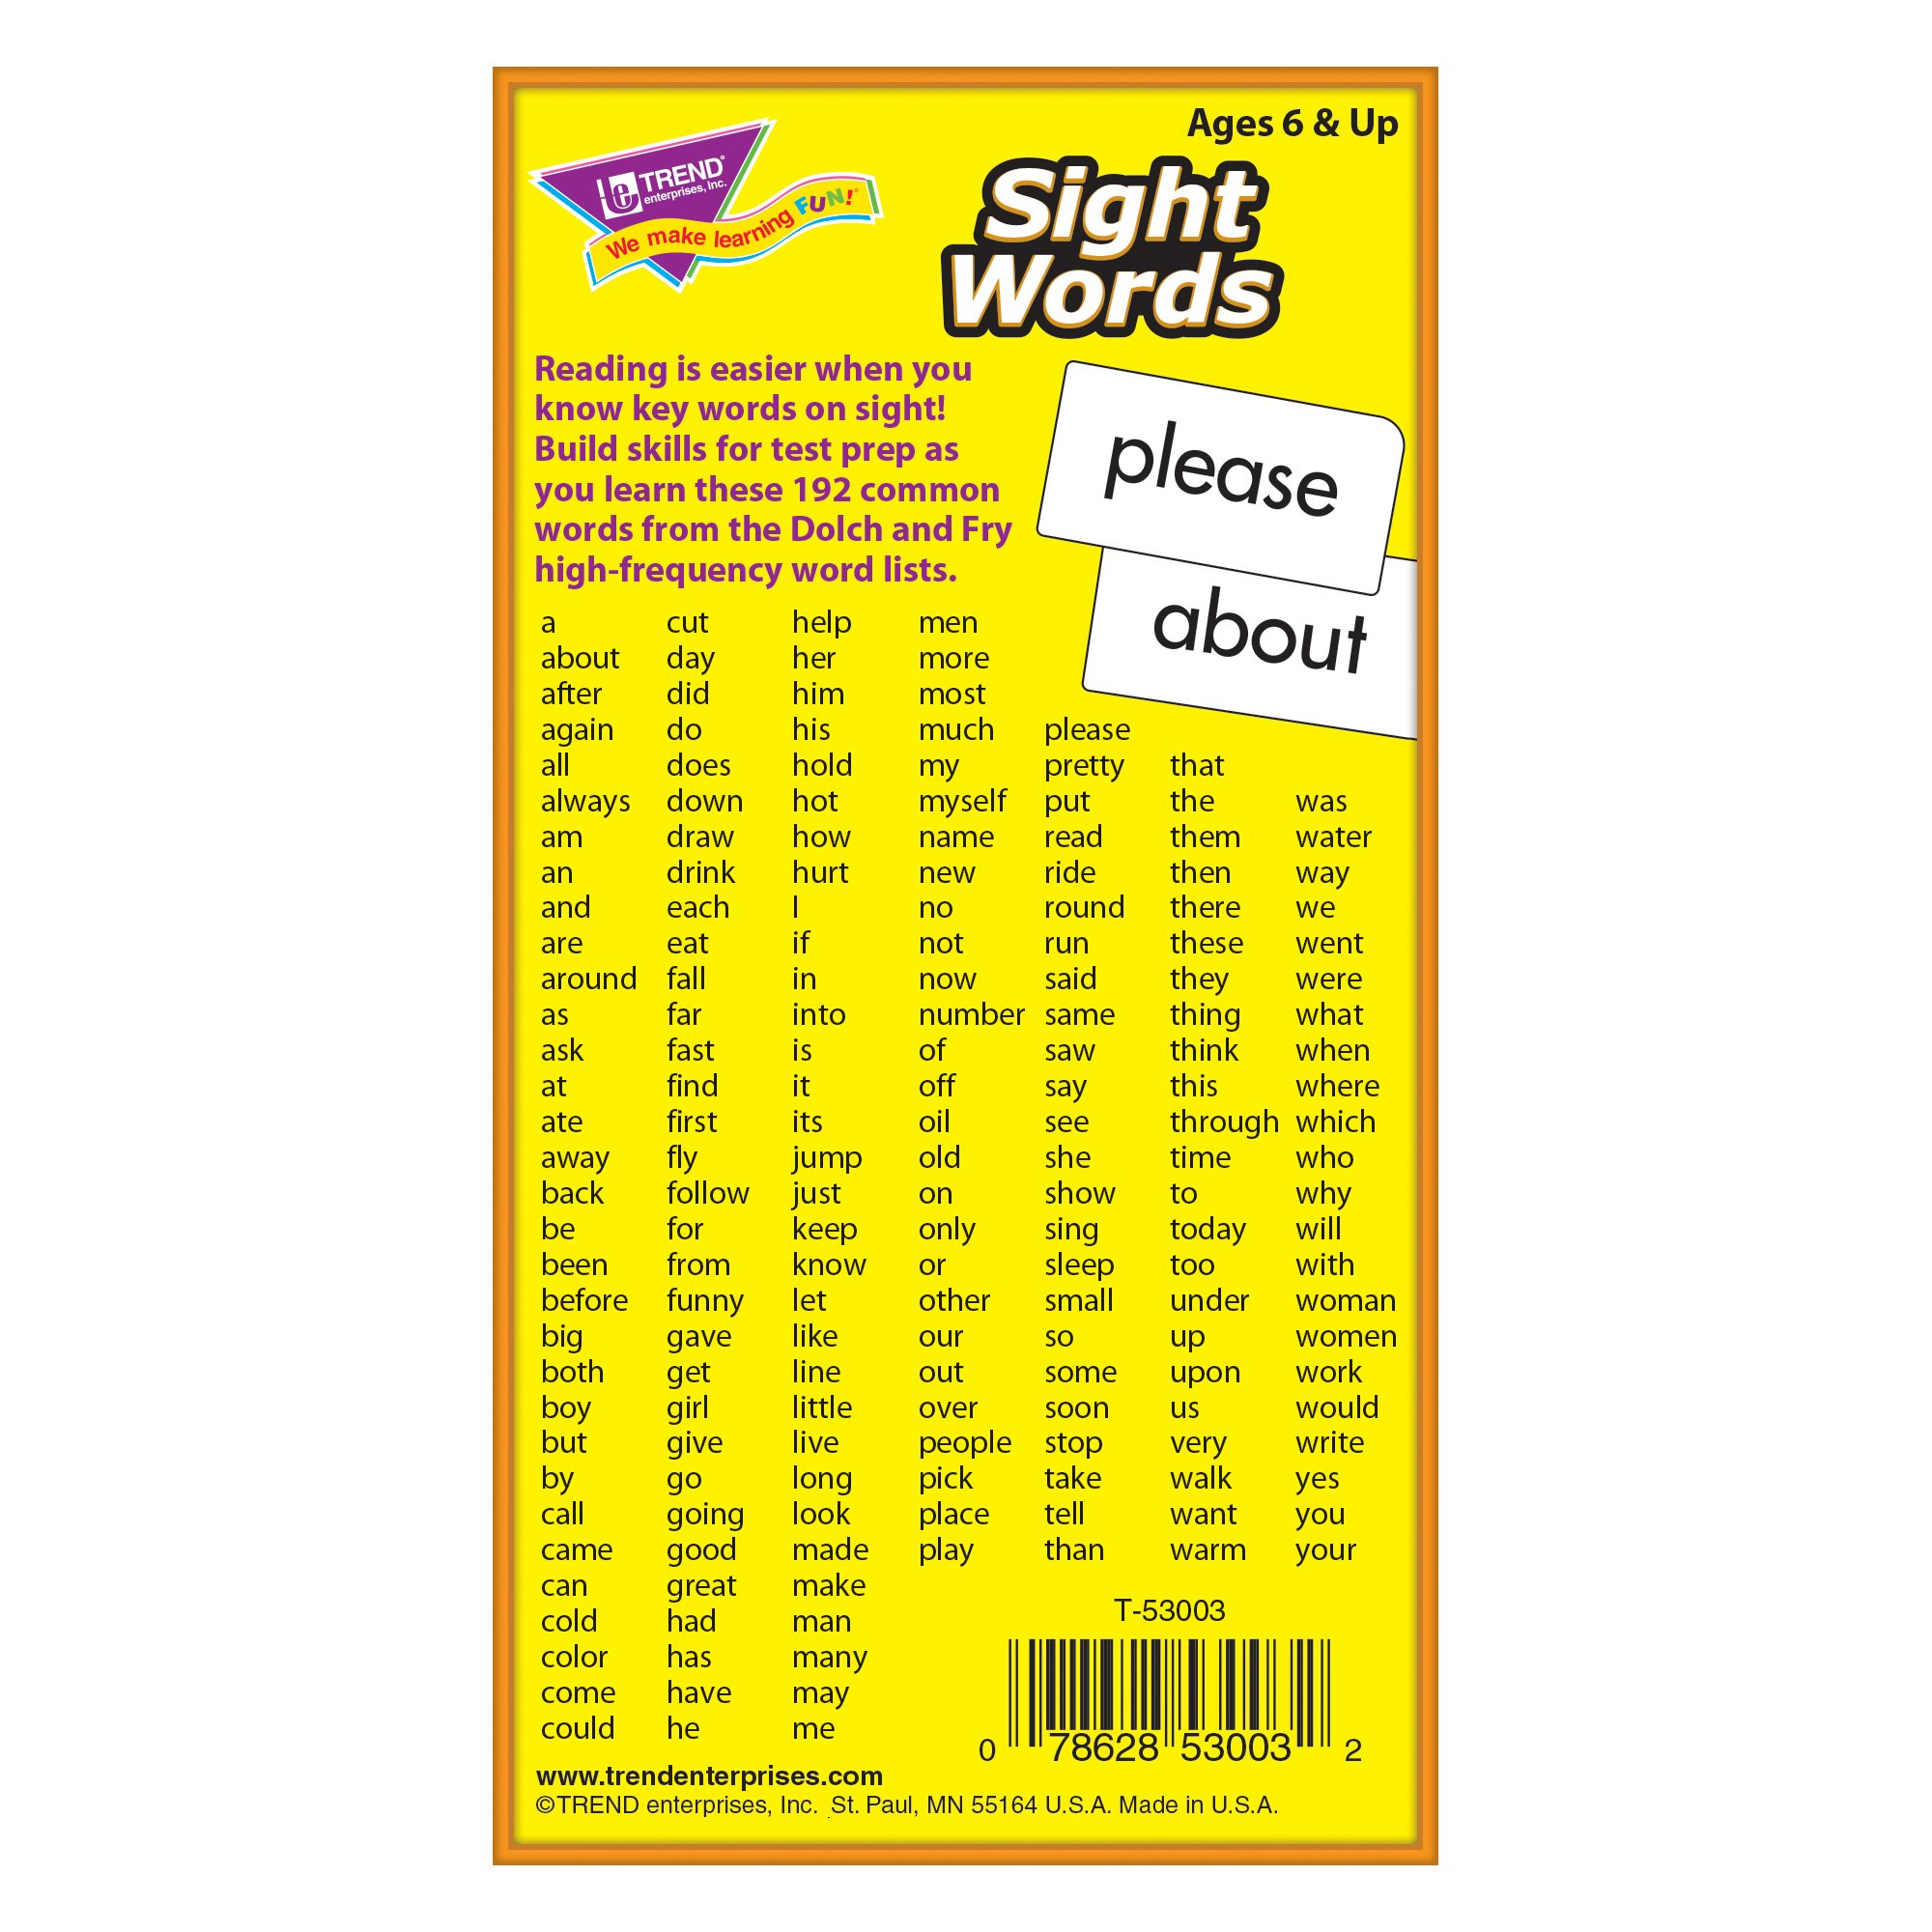 TREND ENTERPRISES, INC. Sight Words Skill Drill Flash Cards, 3 x 6 in (T-53003)